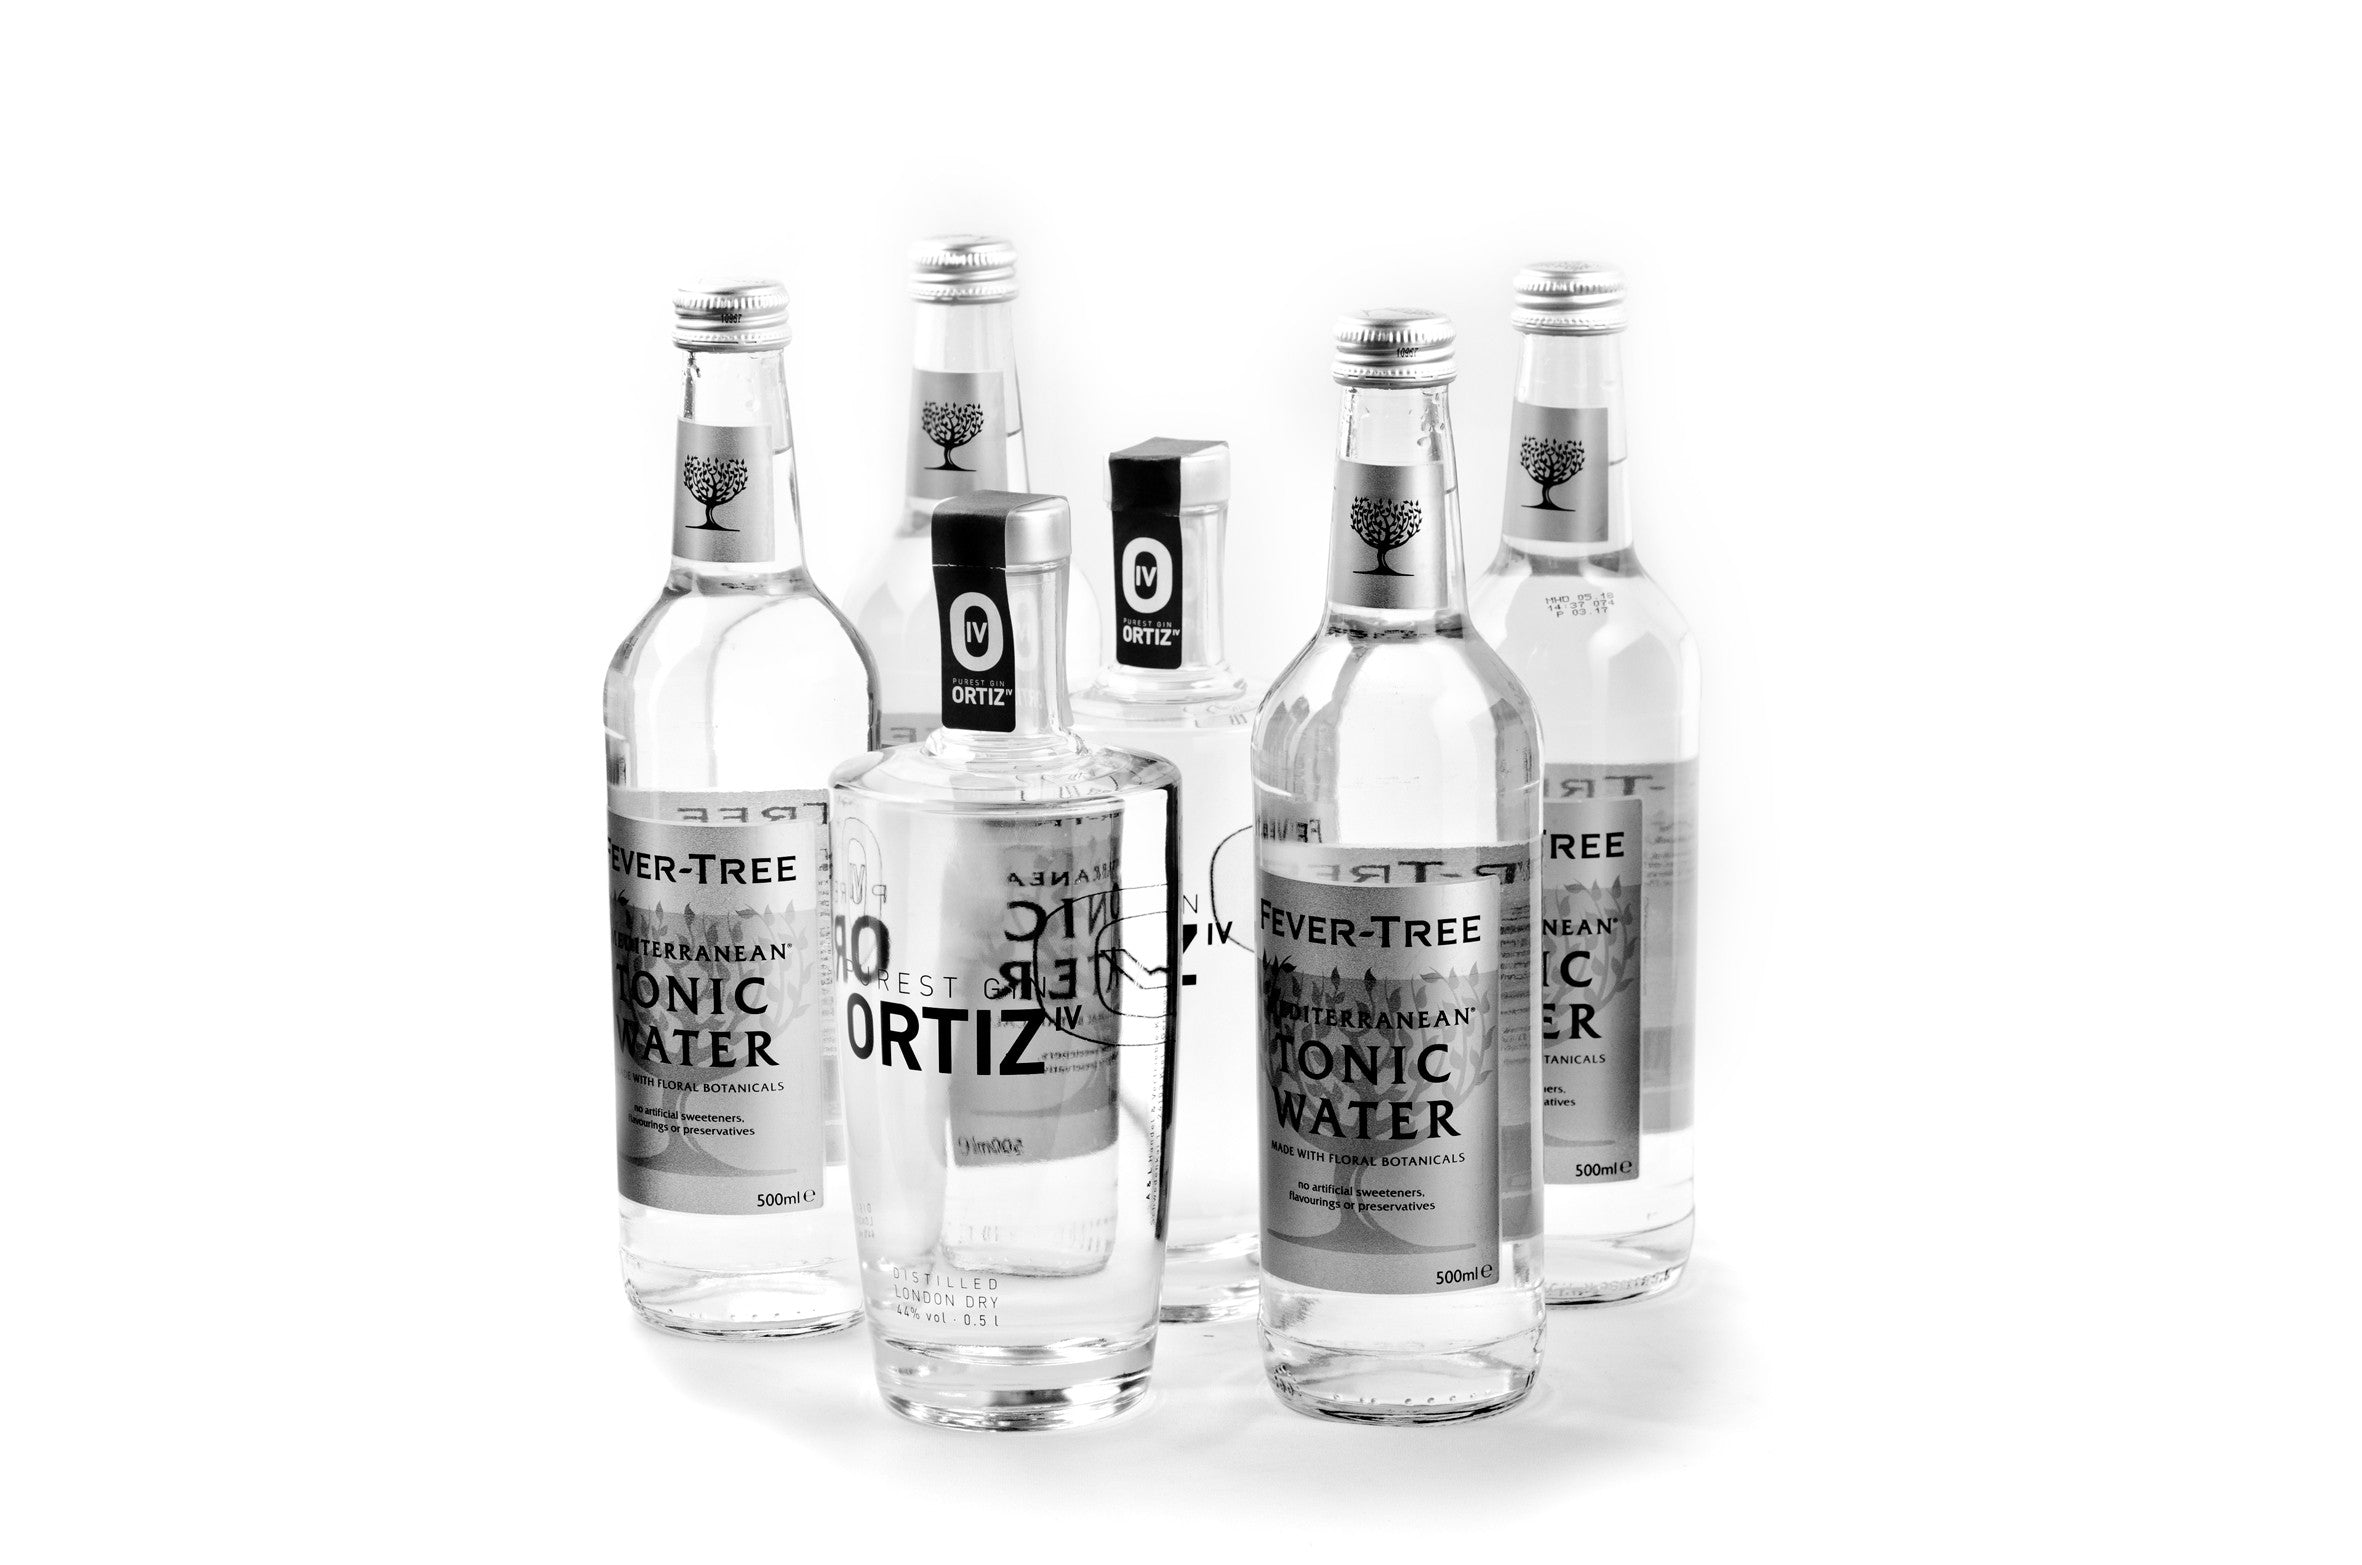 2 bottles ORTIZ IV PUREST GIN 0.5l incl. 4 bottles Fever Tree Tonic 0.5l